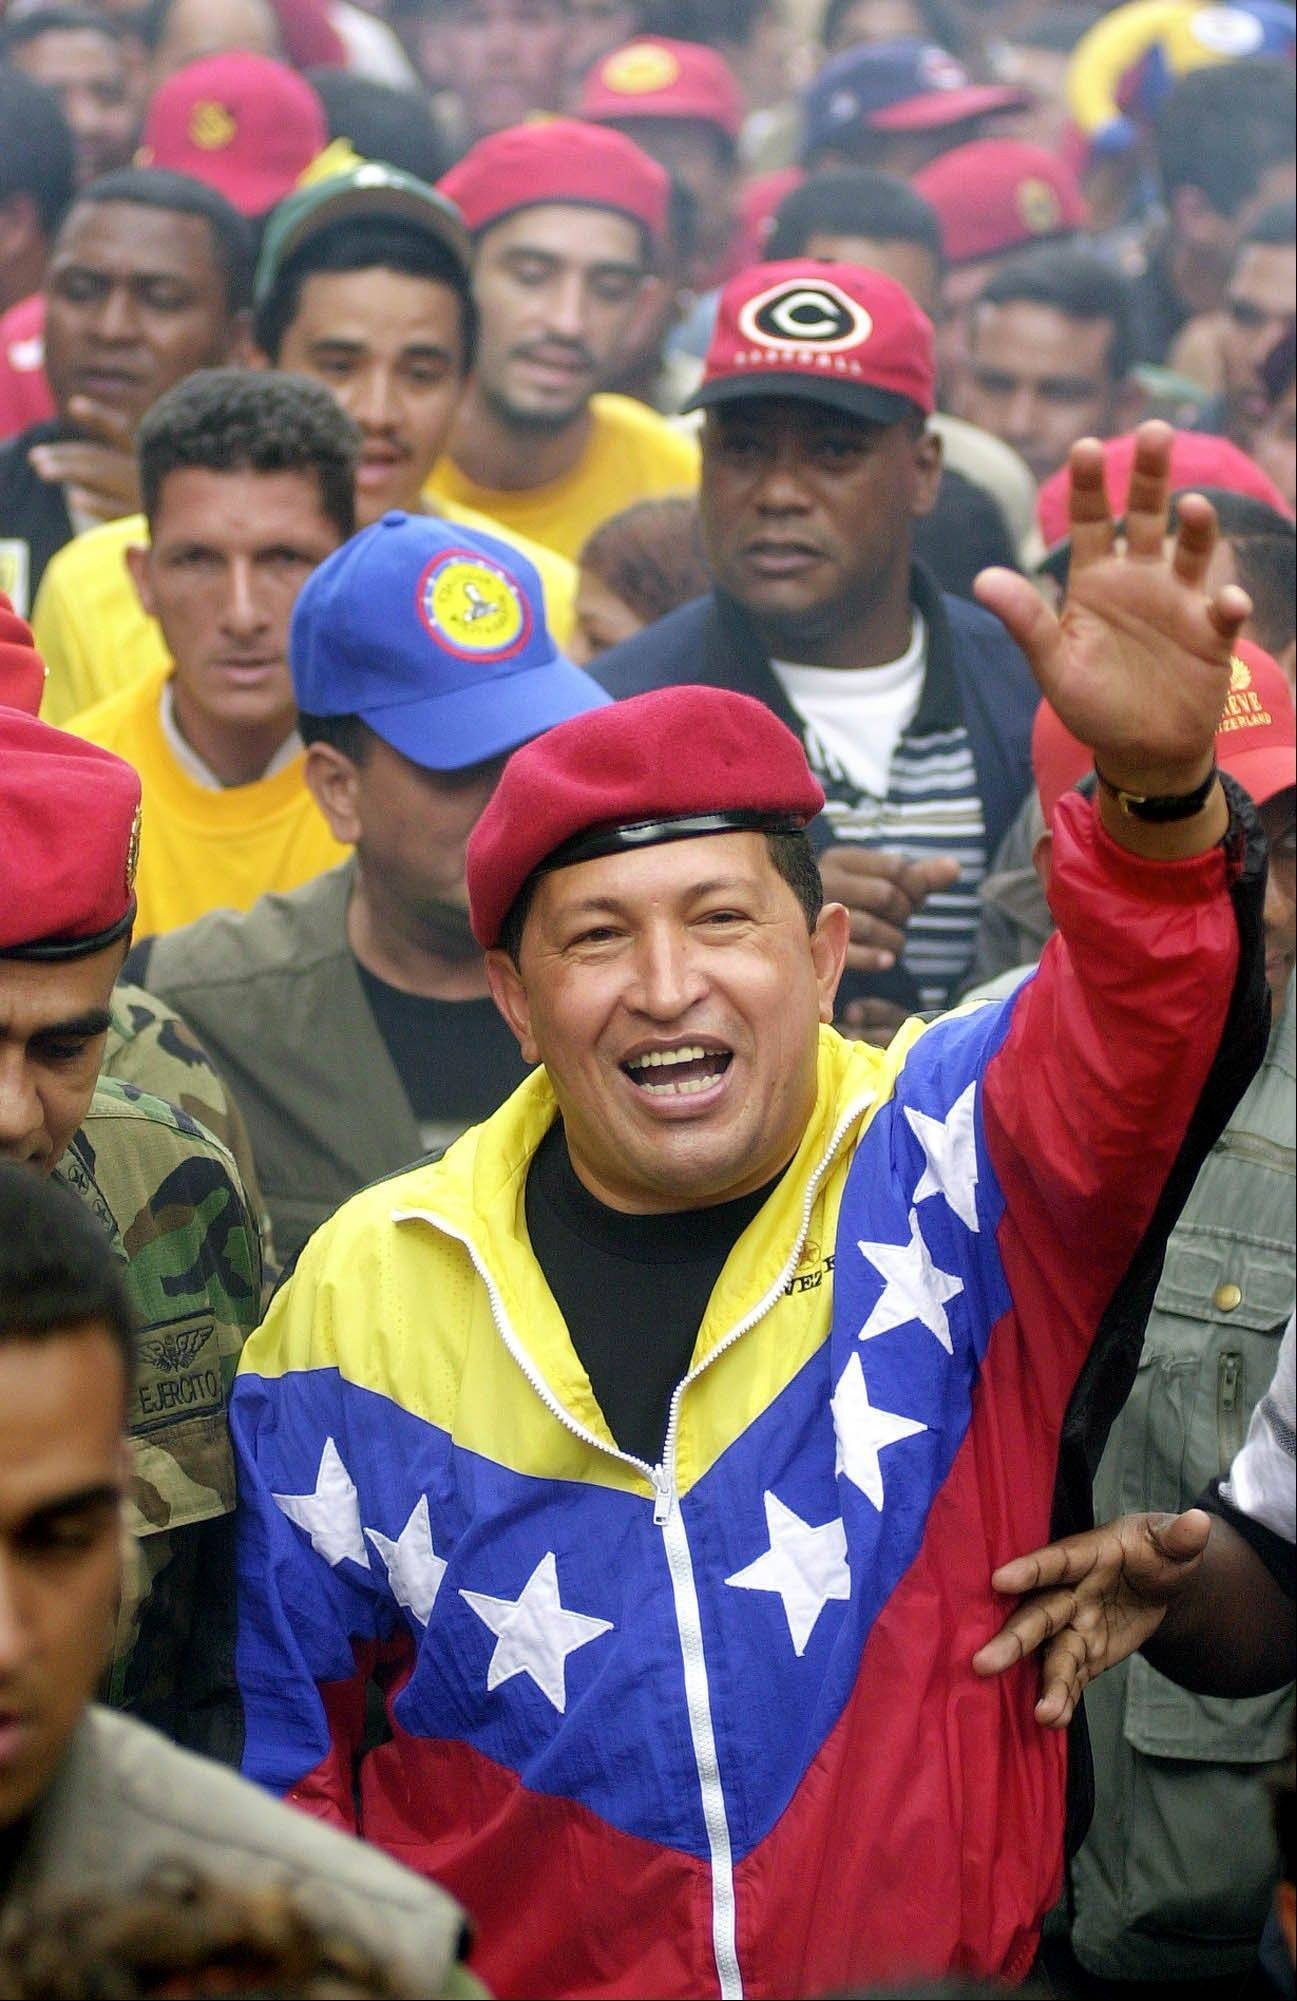 In this Jan. 23, 2002, photo, Venezuela's President Hugo Chavez waves to supporters during a government march commemorating the anniversary of Venezuelan democracy in Caracas.